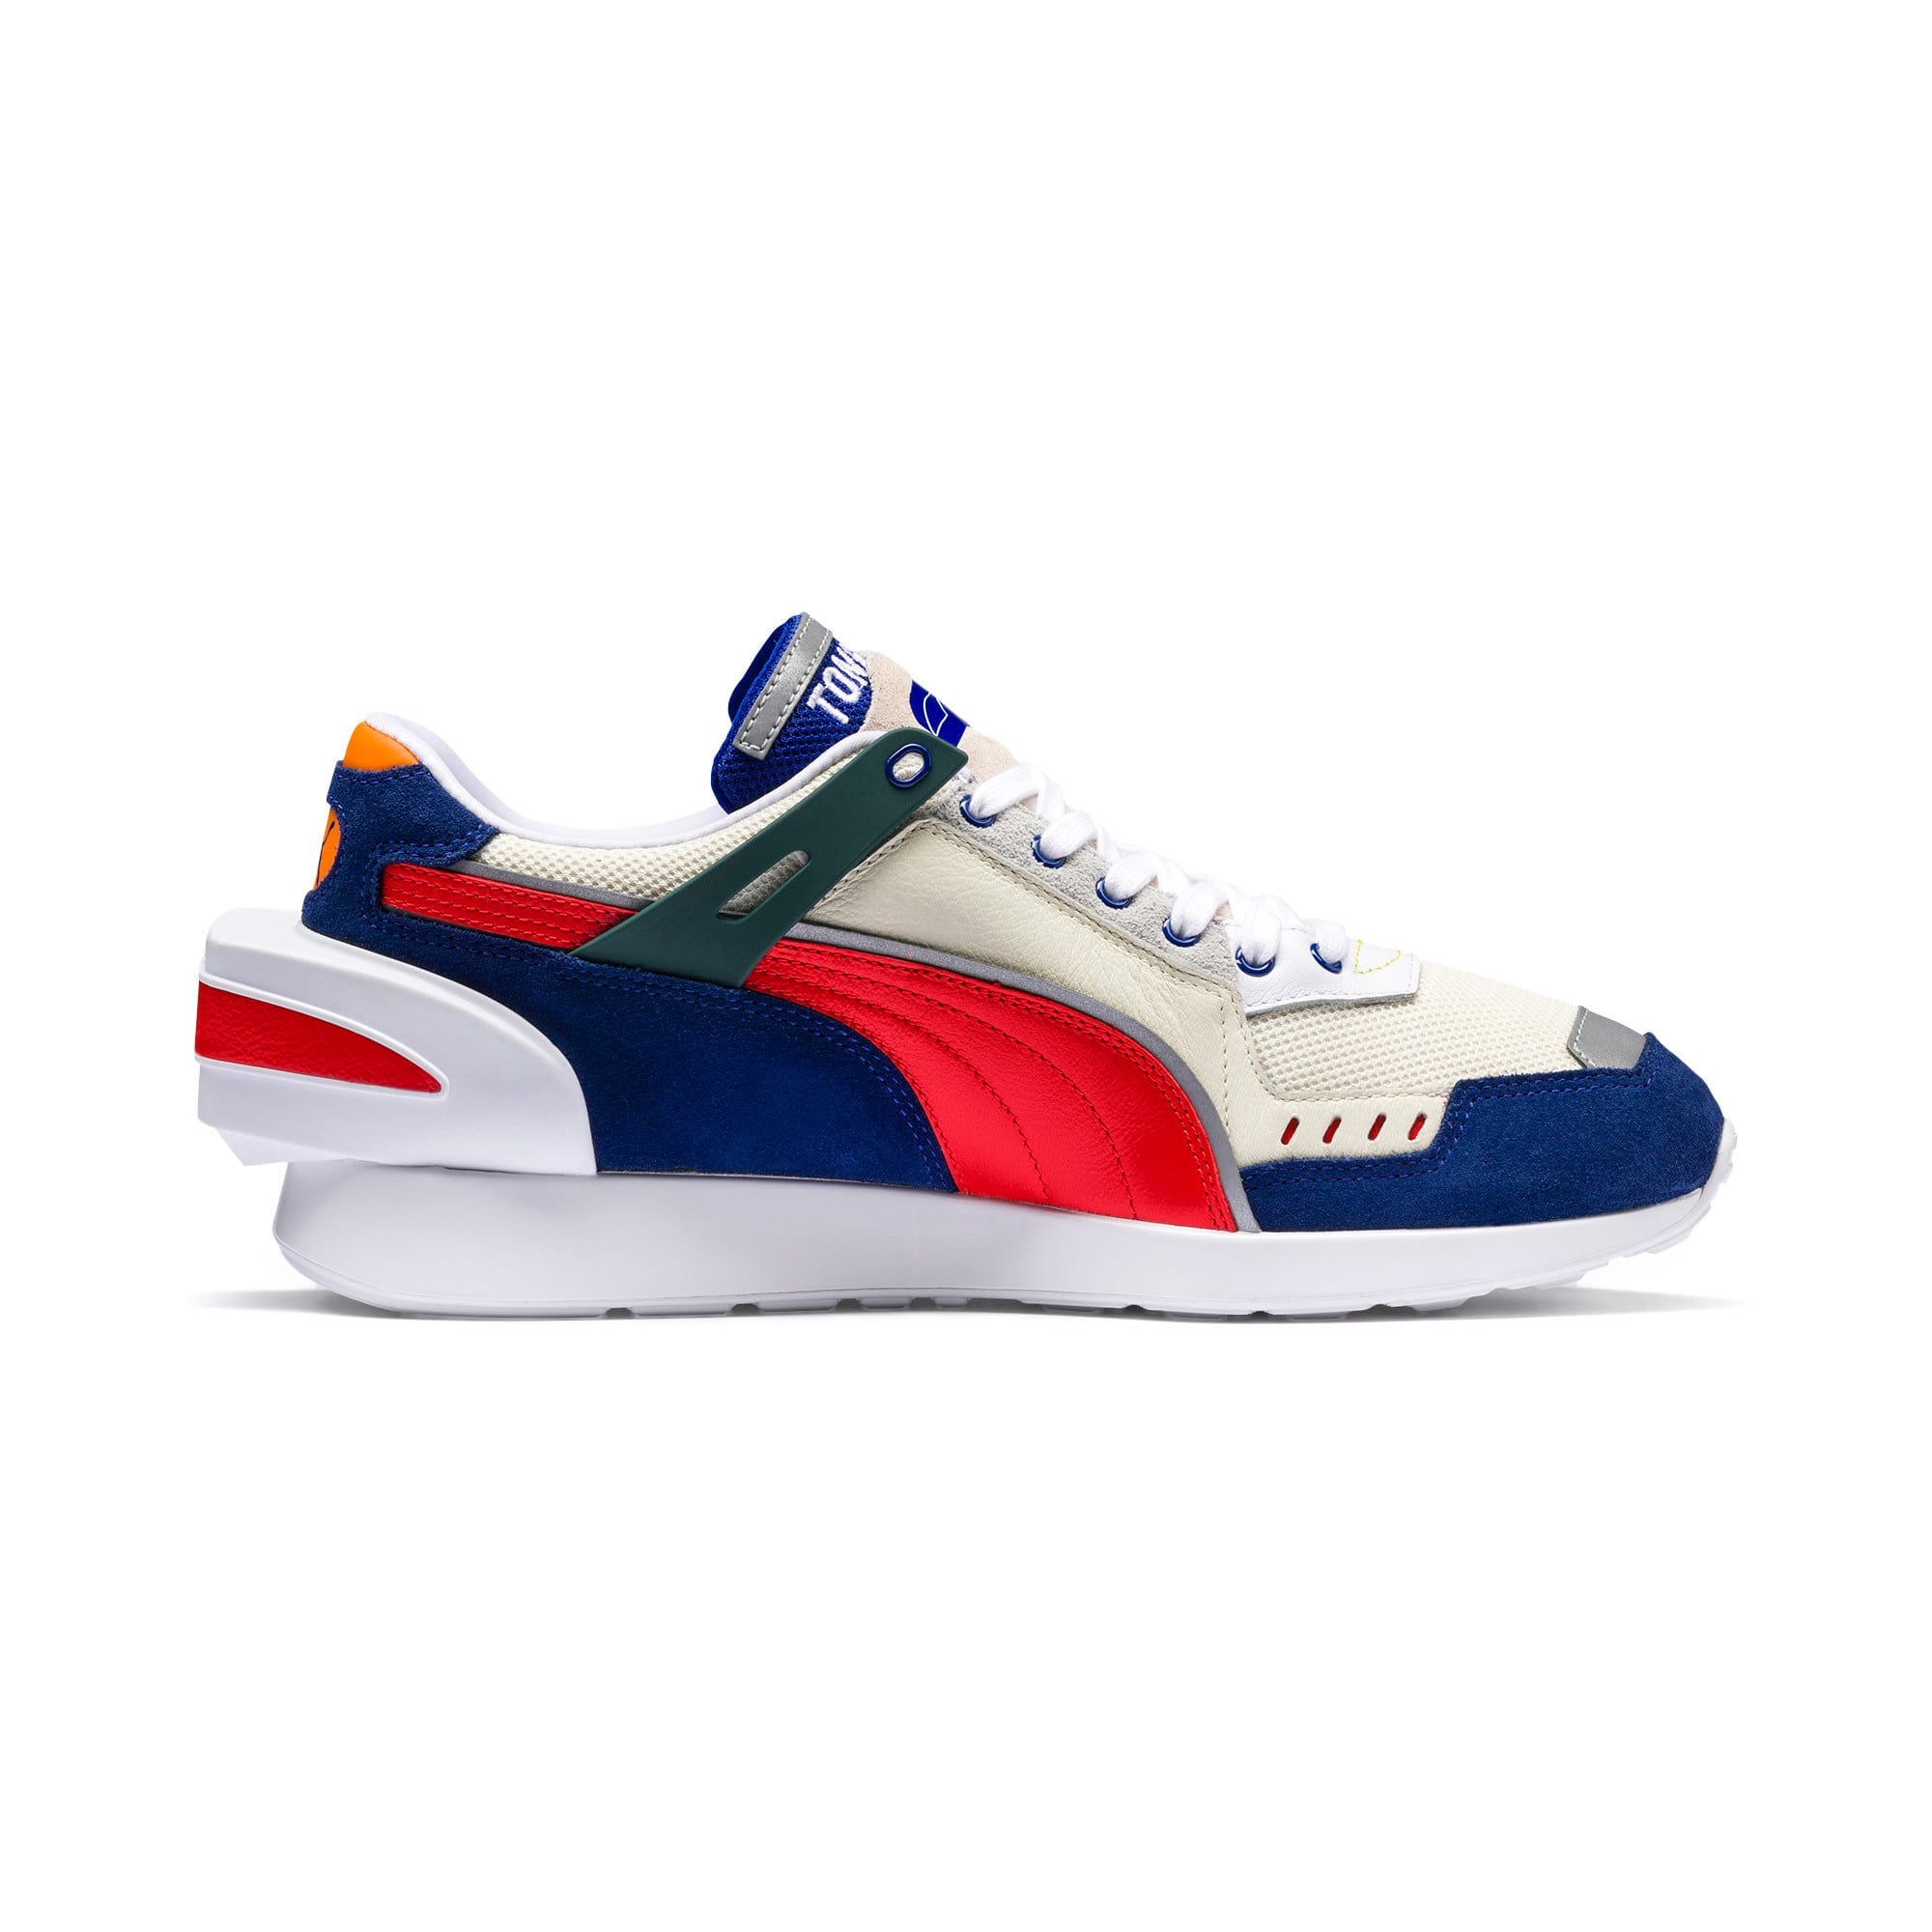 Thumbnail 6 of PUMA x ADER ERROR RS-1 Sneakers, Whisper White-Blueprint-Red, medium